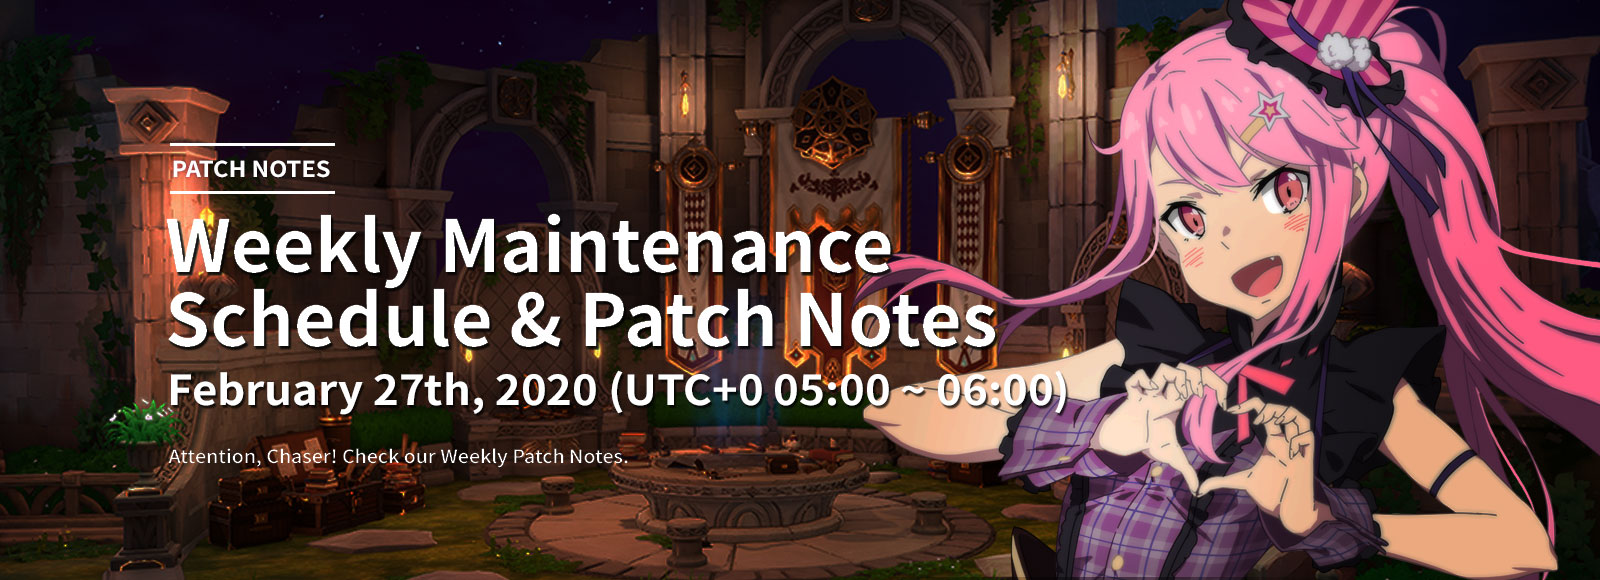 February 27th 2020 Weekly Maintenance Schedule & Patch Notes